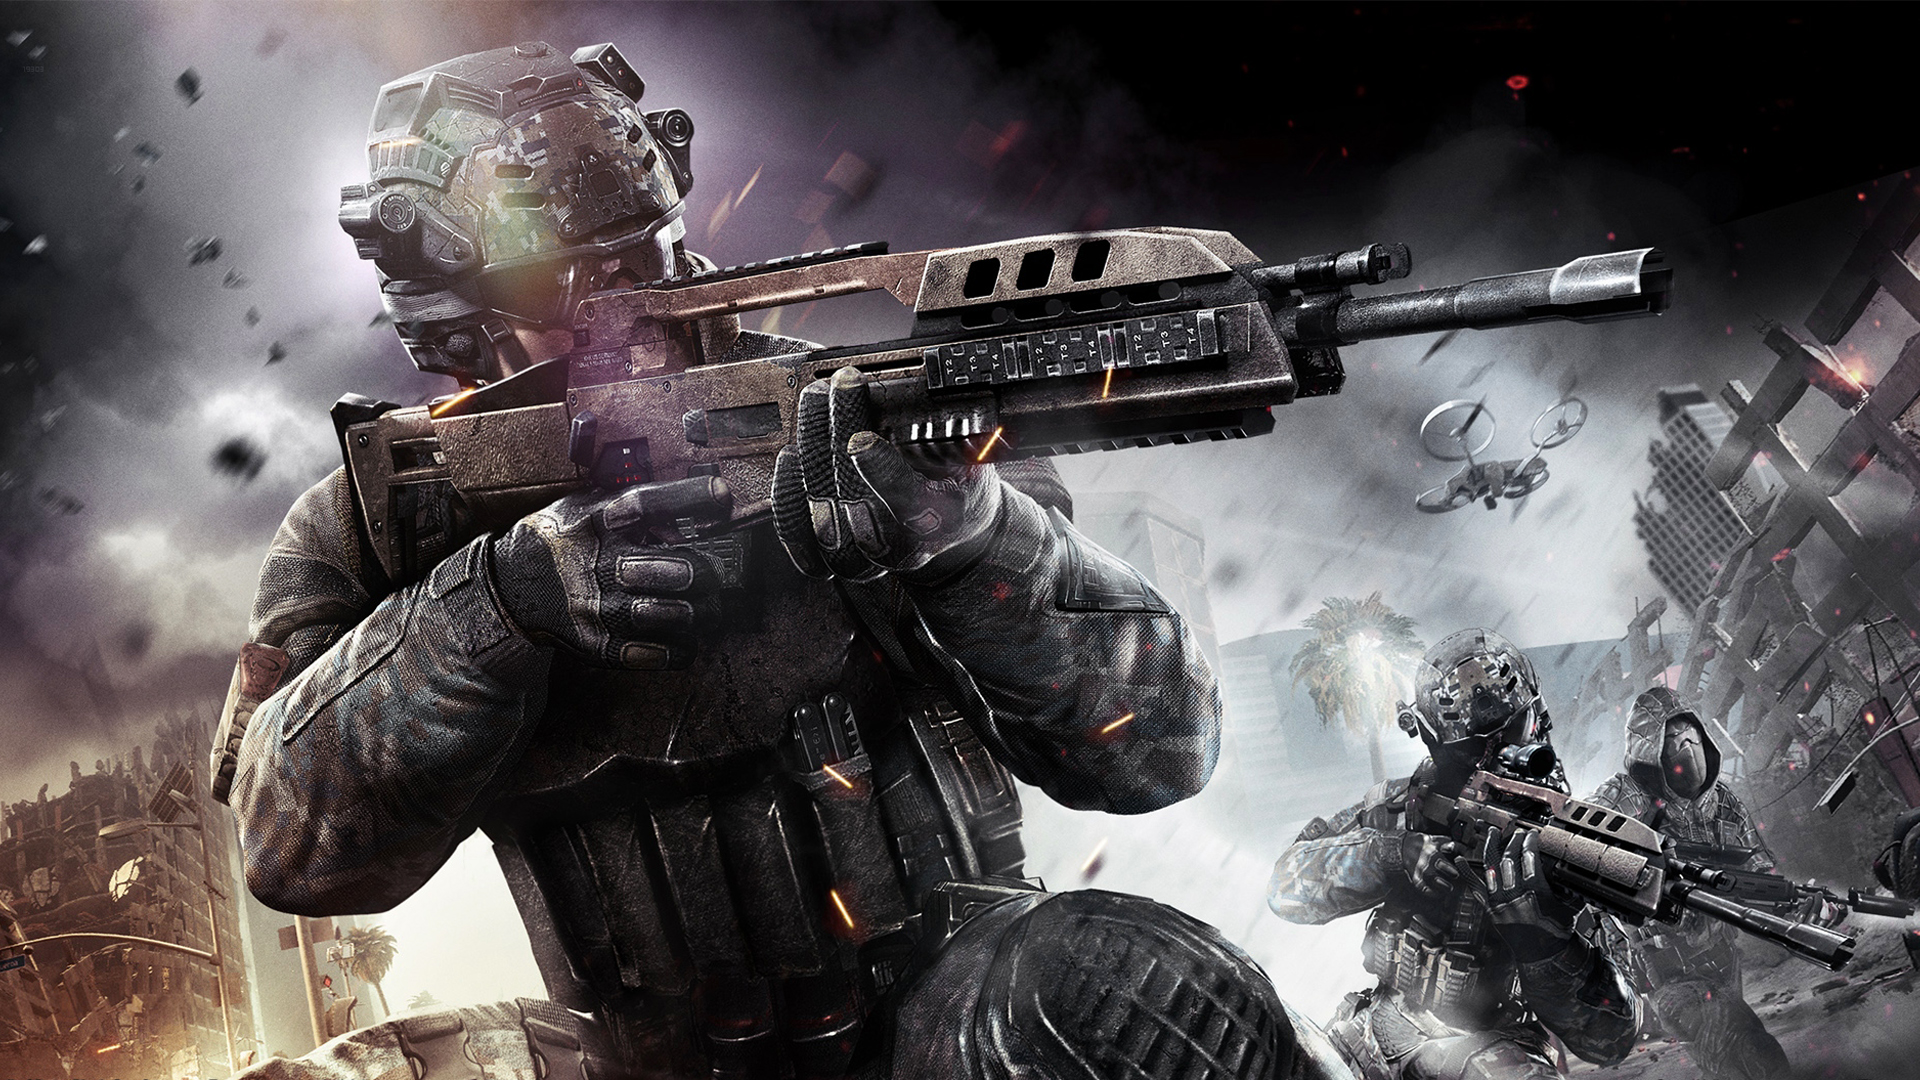 Call Of Duty Black Ops 2 Wallpaper 761066 1920x1080px by Colin 1920x1080